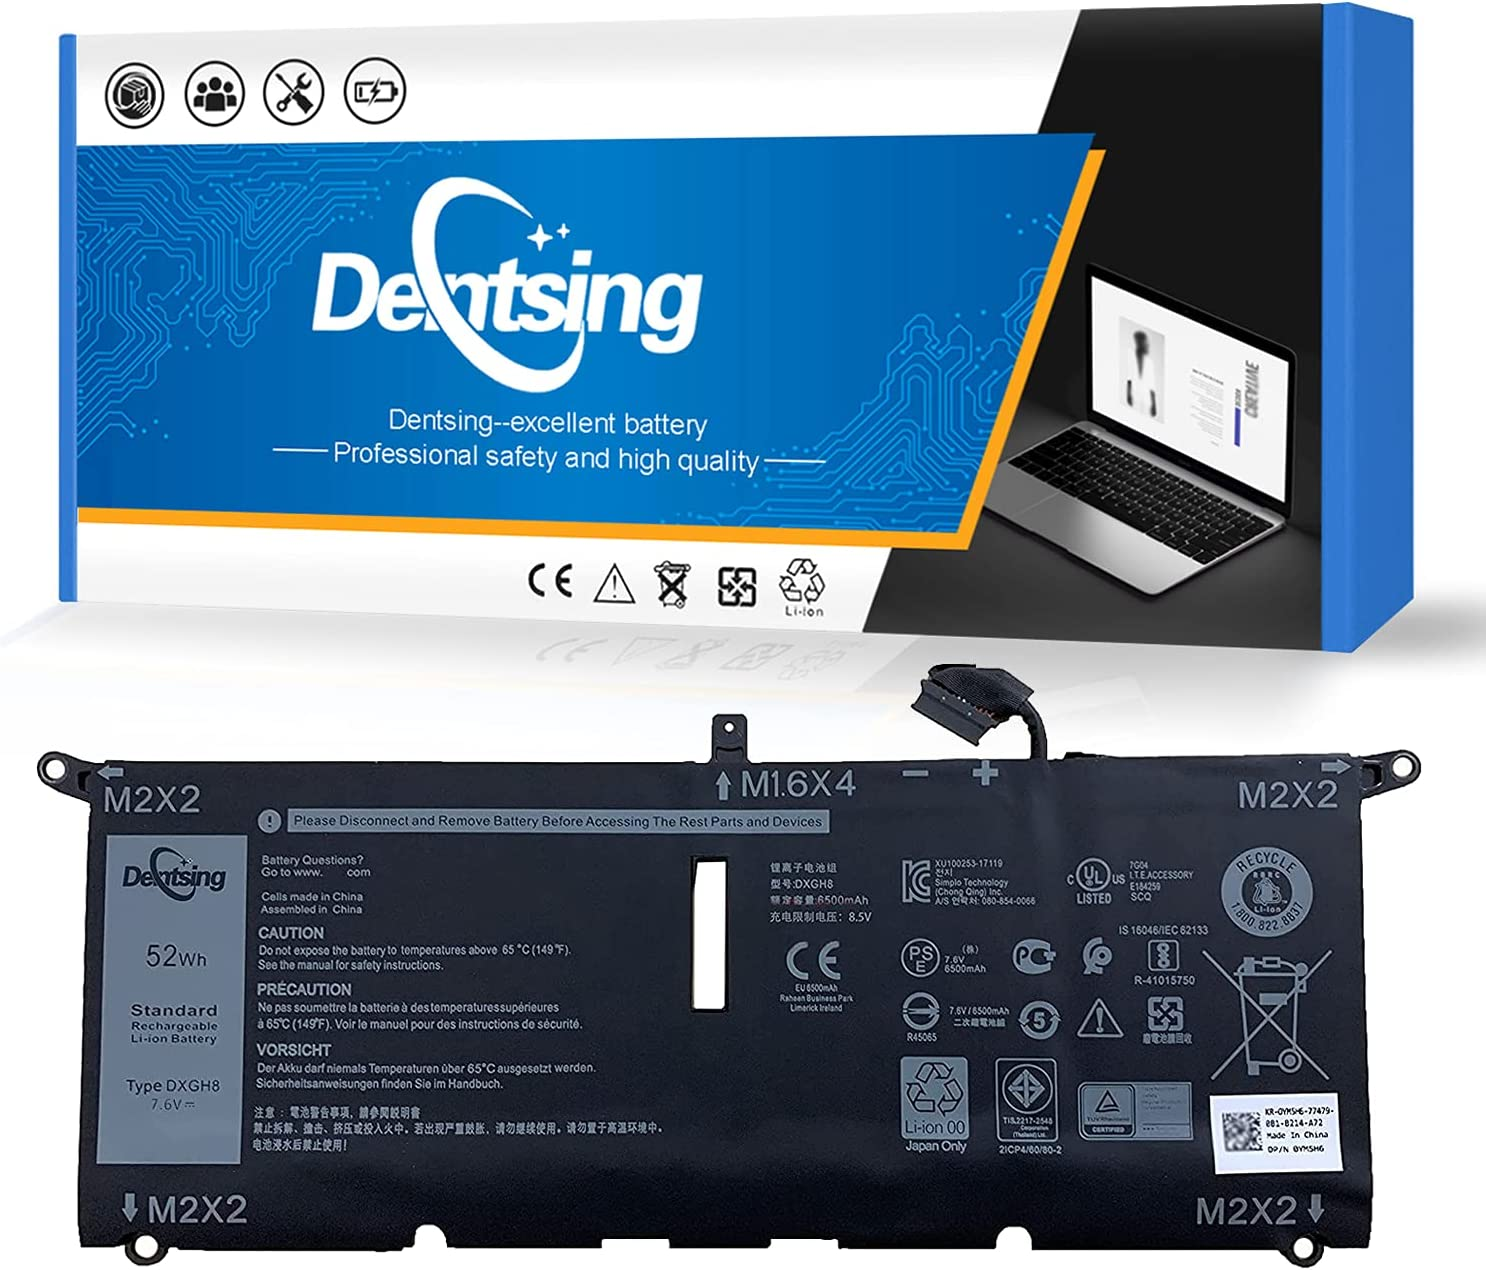 Dentsing Max Inventory cleanup selling sale 55% OFF DXGH8 7.6V 52Wh 6500mAh Battery Laptop with Compatible